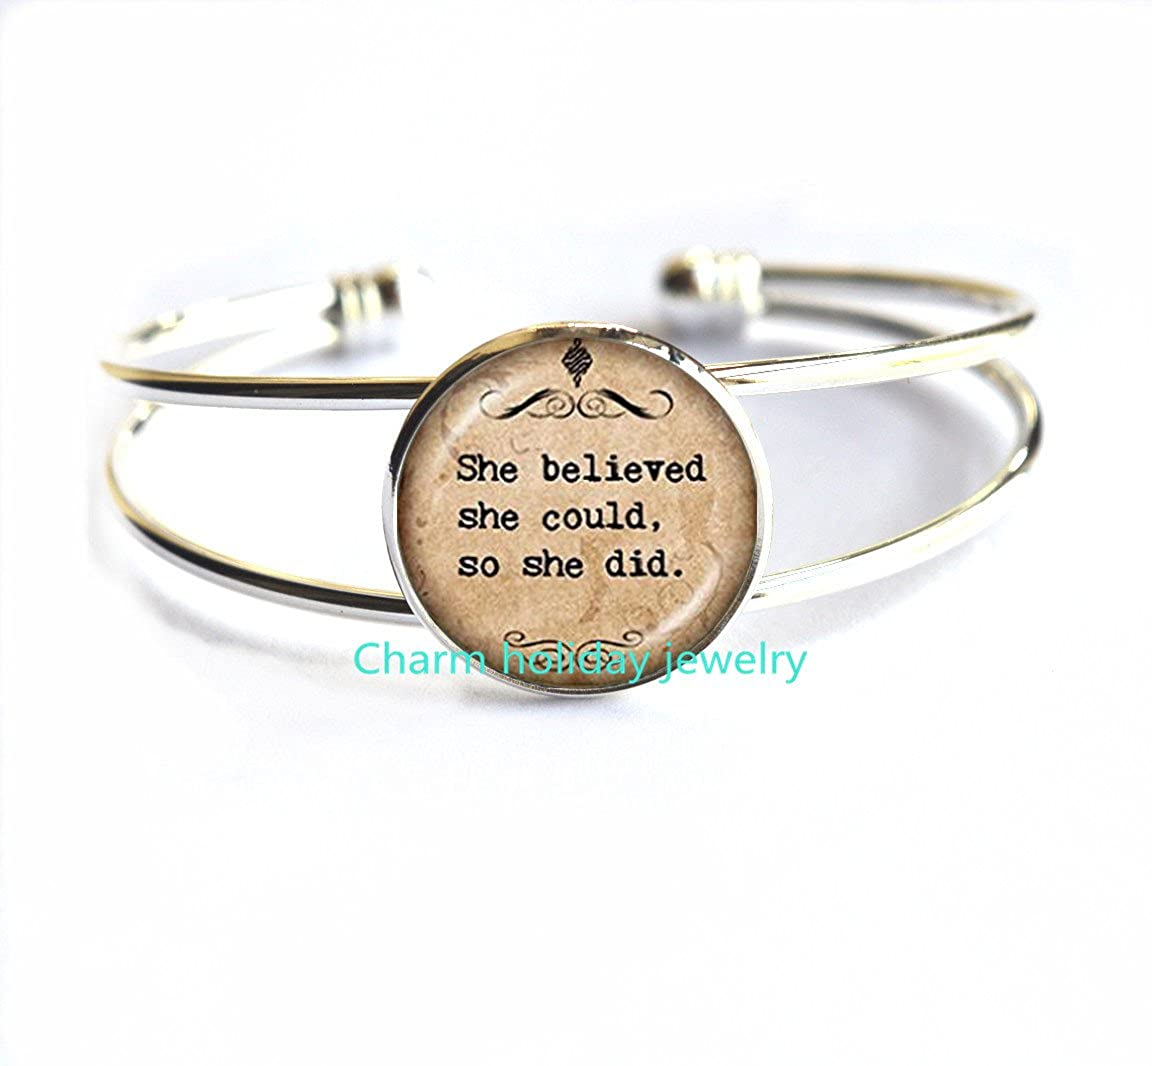 graduation jewelry.D0147 Sister Gift,She Believed She Could so She Did Chain Bracelets Bracelet Jewelry,motivational quote jewellery